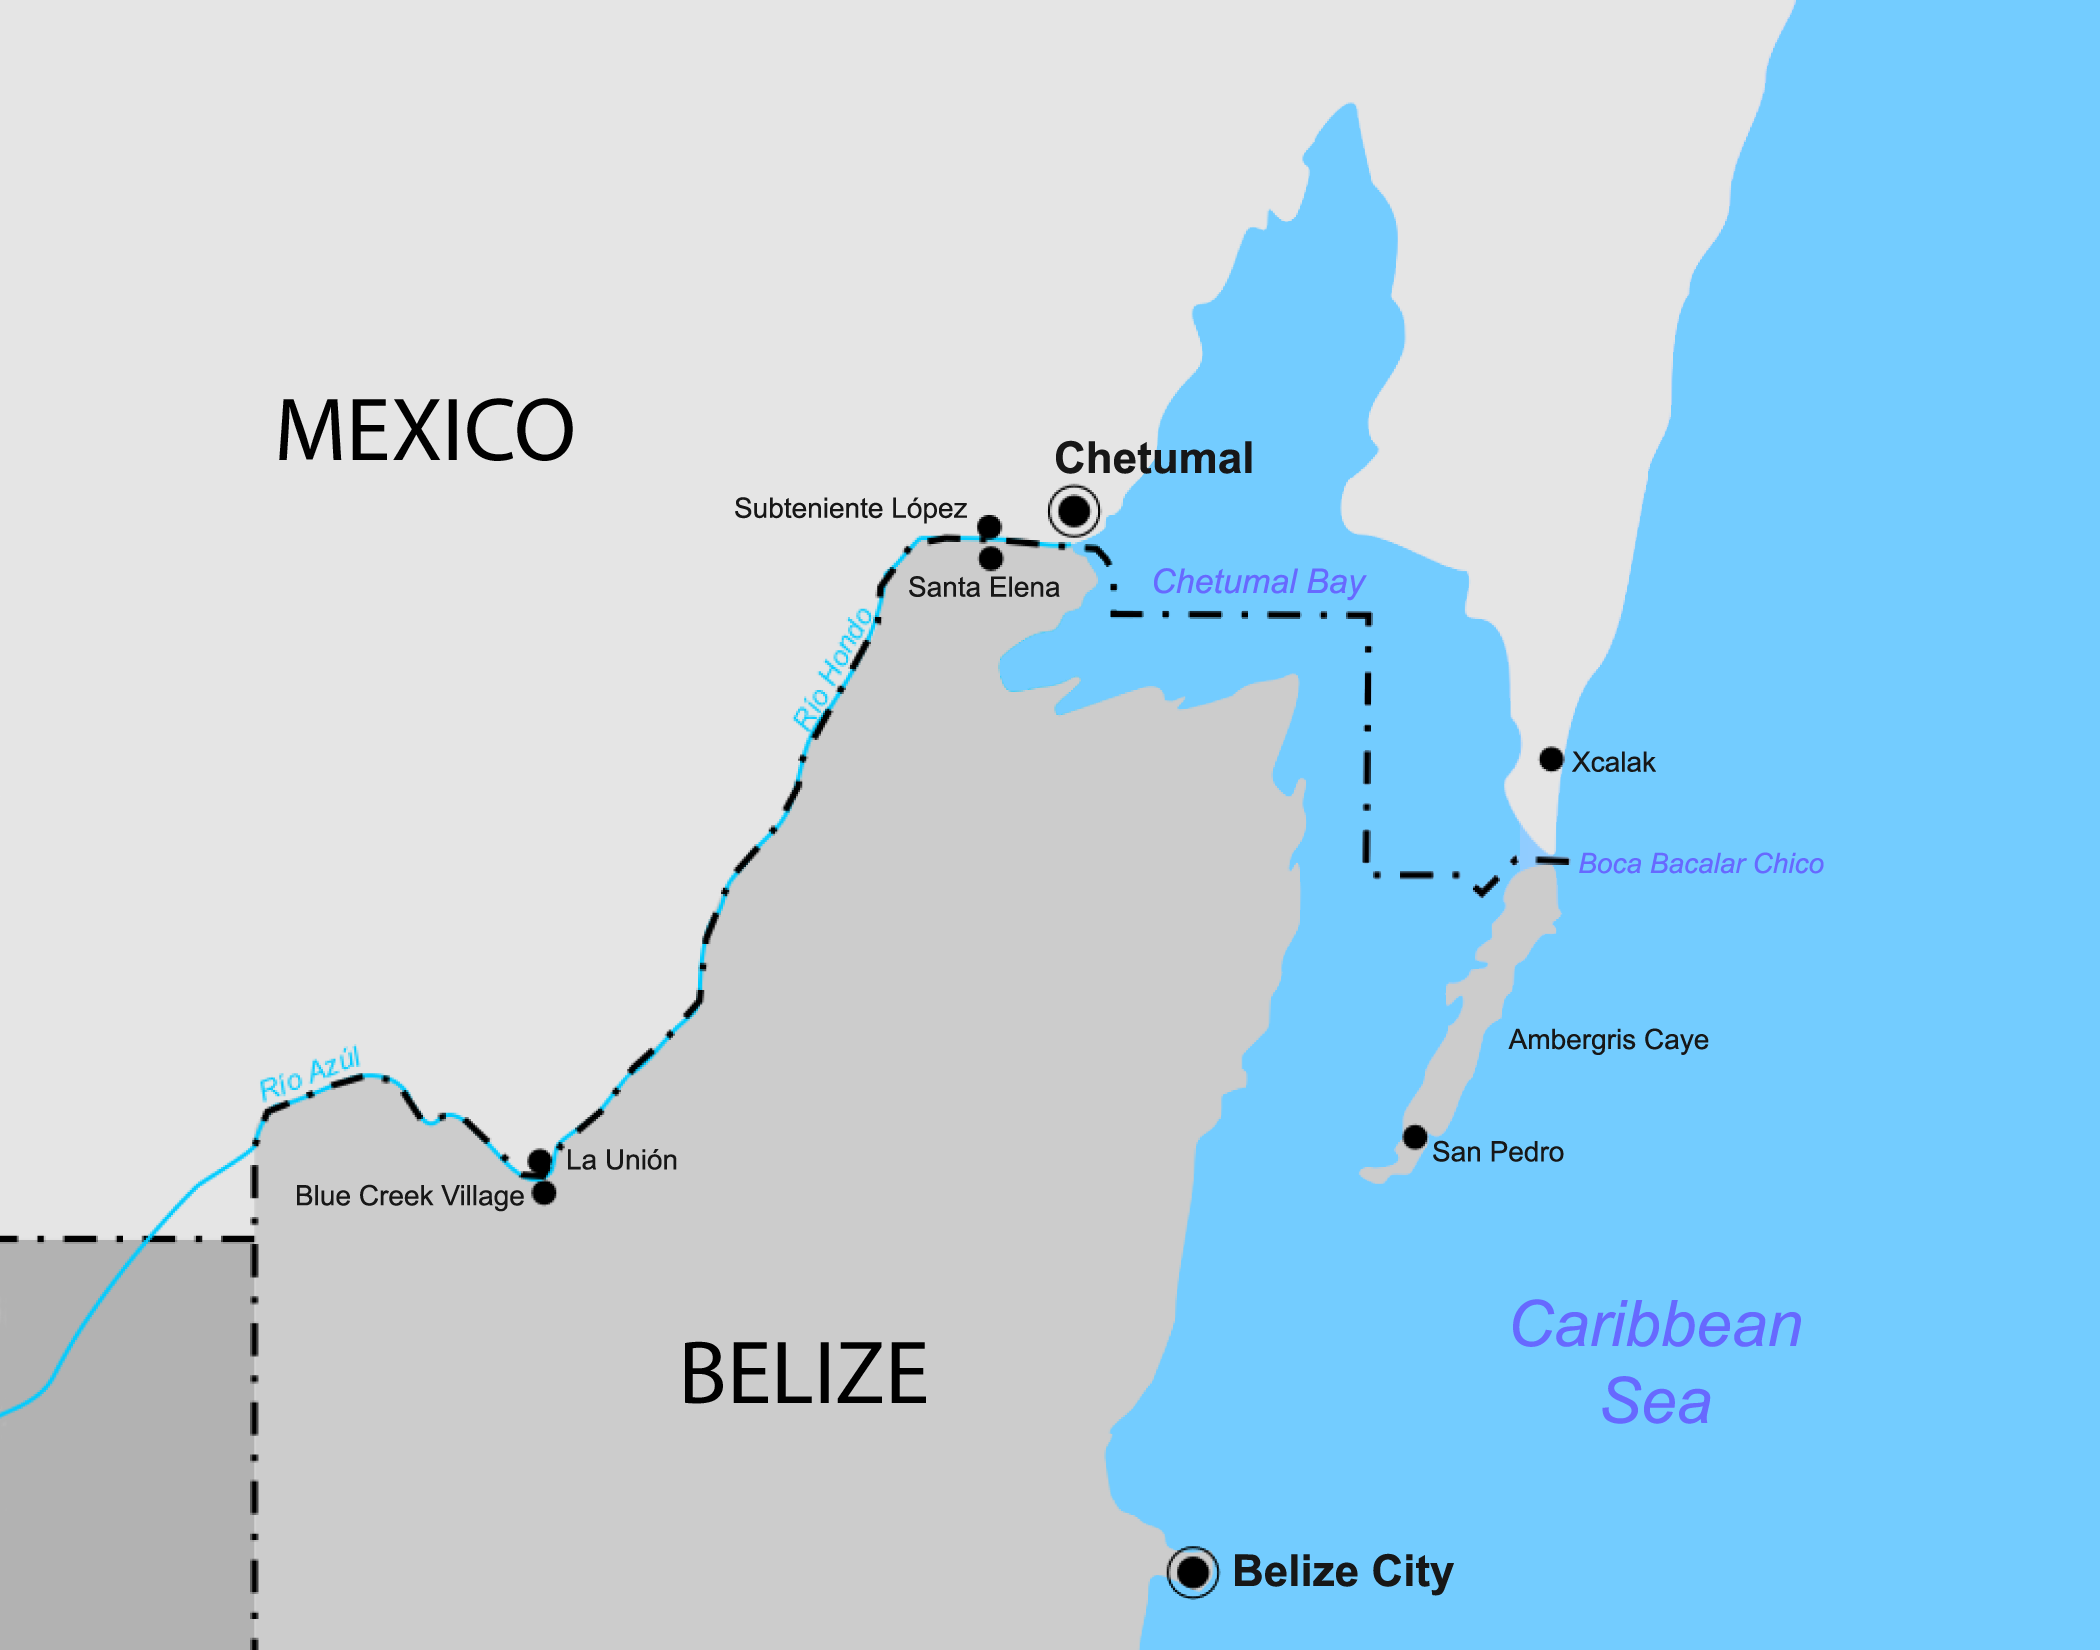 Belize Mexico Border Wikipedia